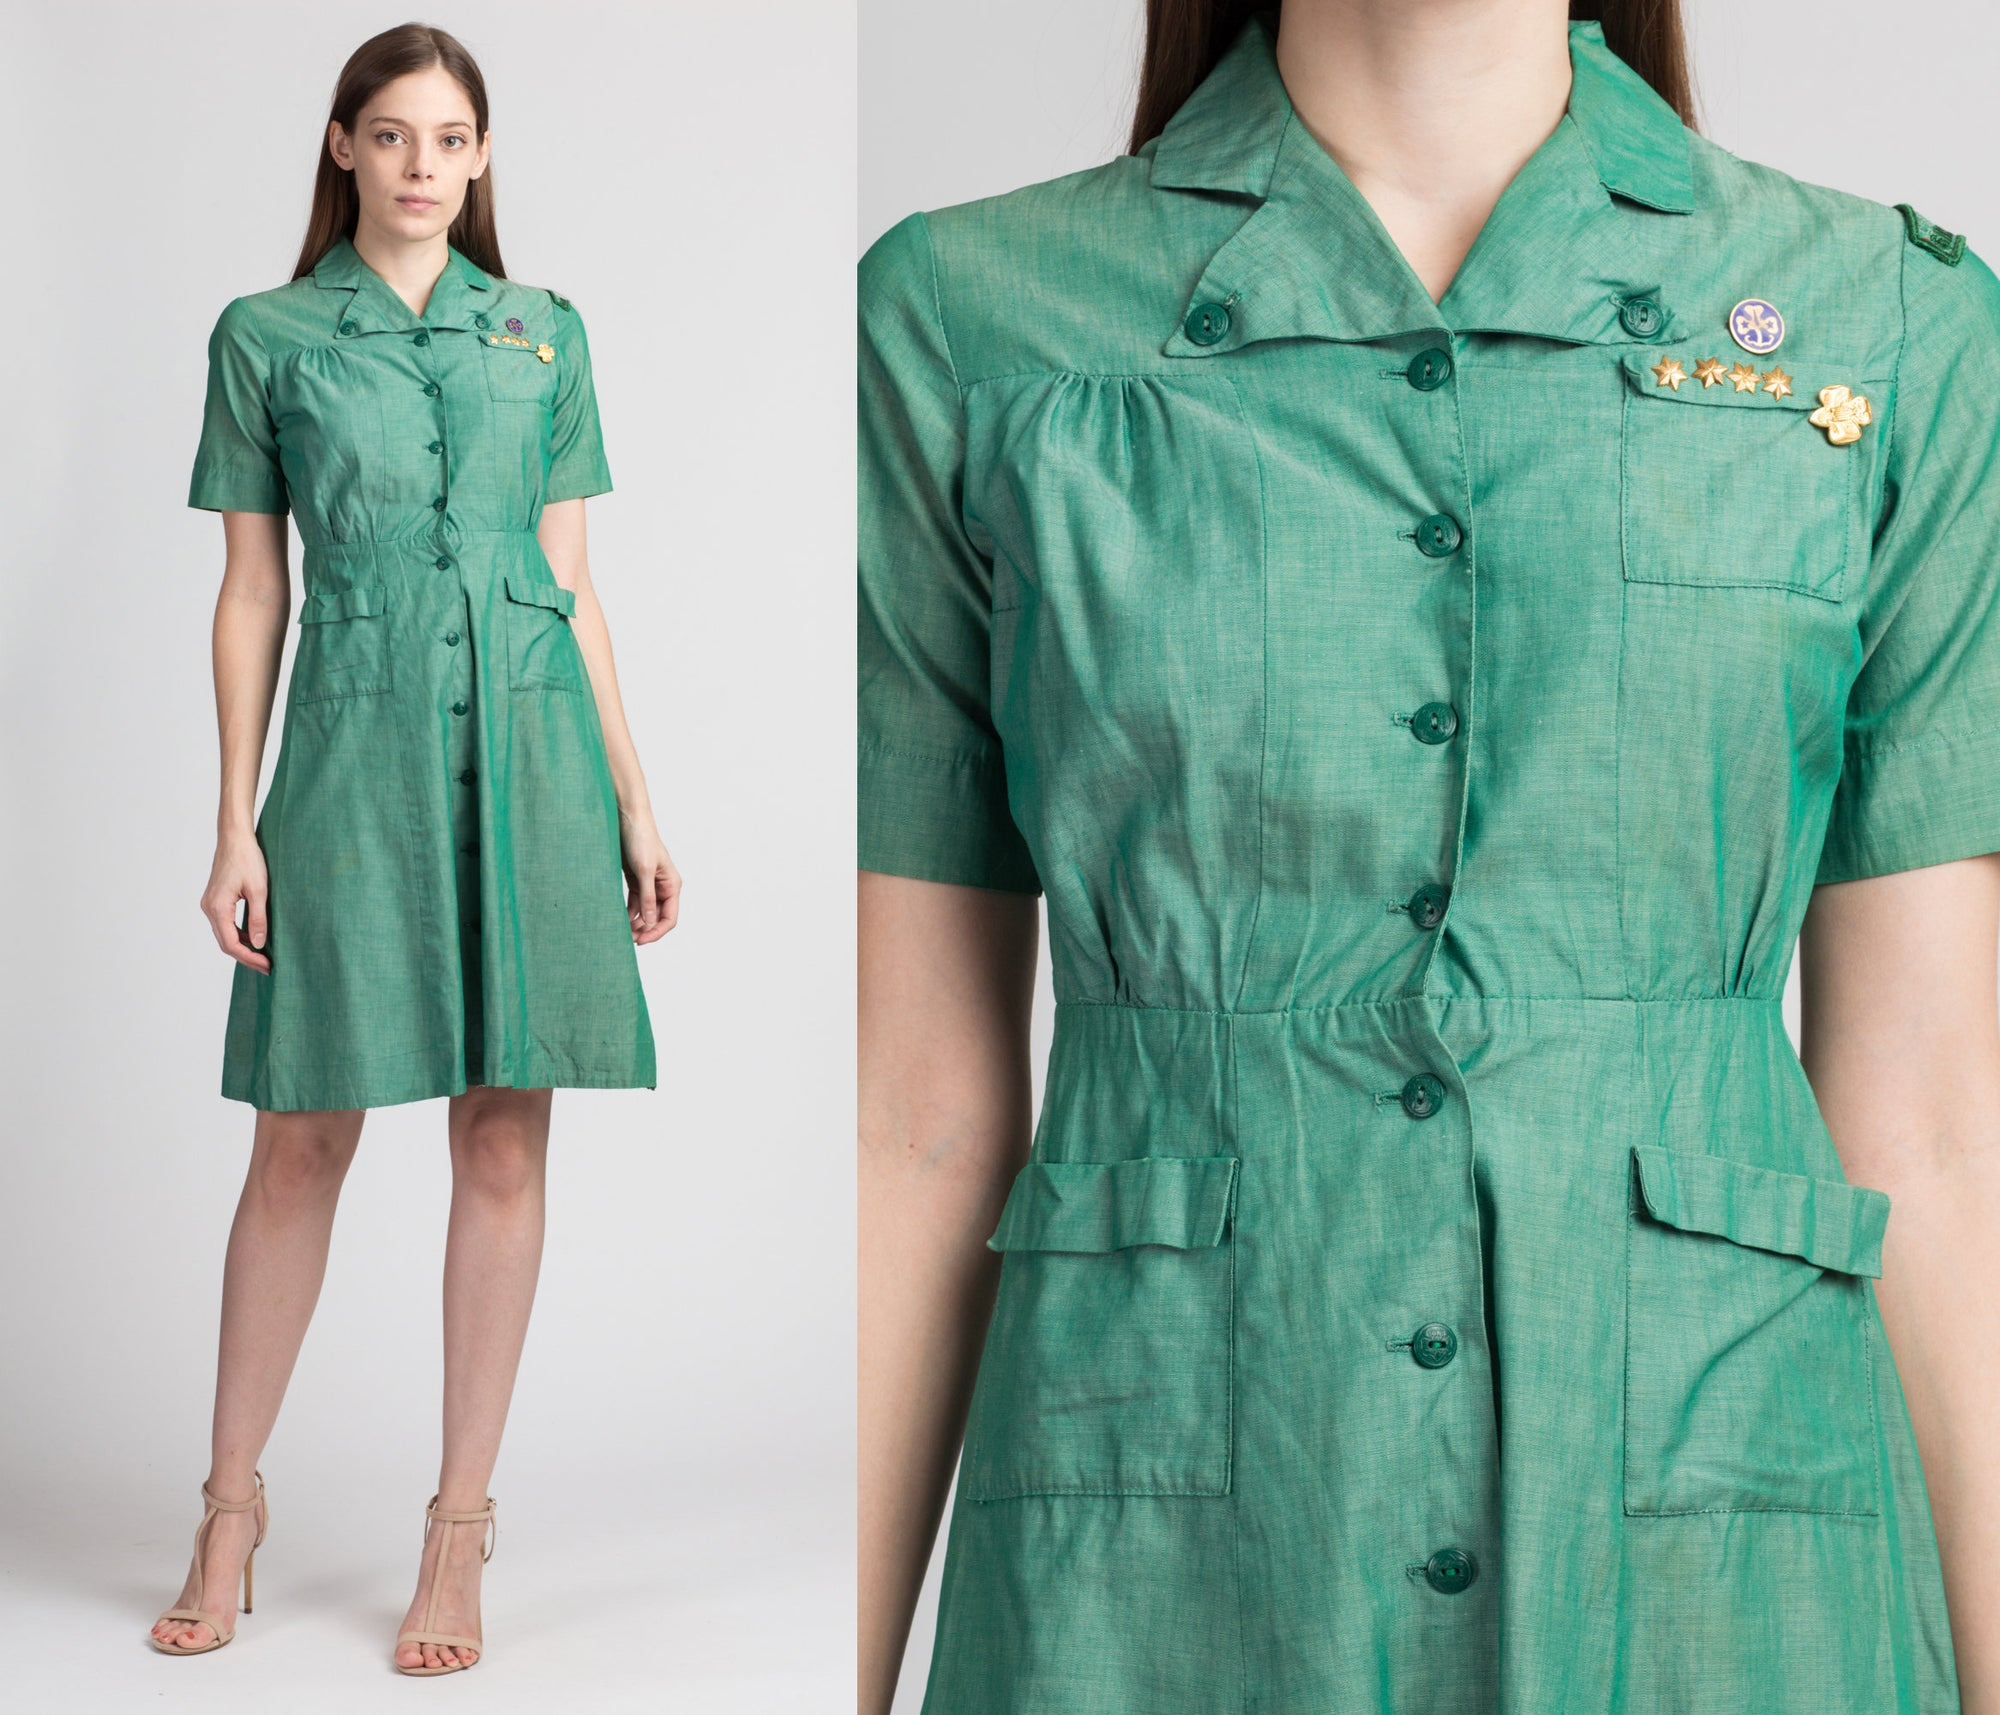 1950s Girl Scouts Uniform Dress - Extra Small